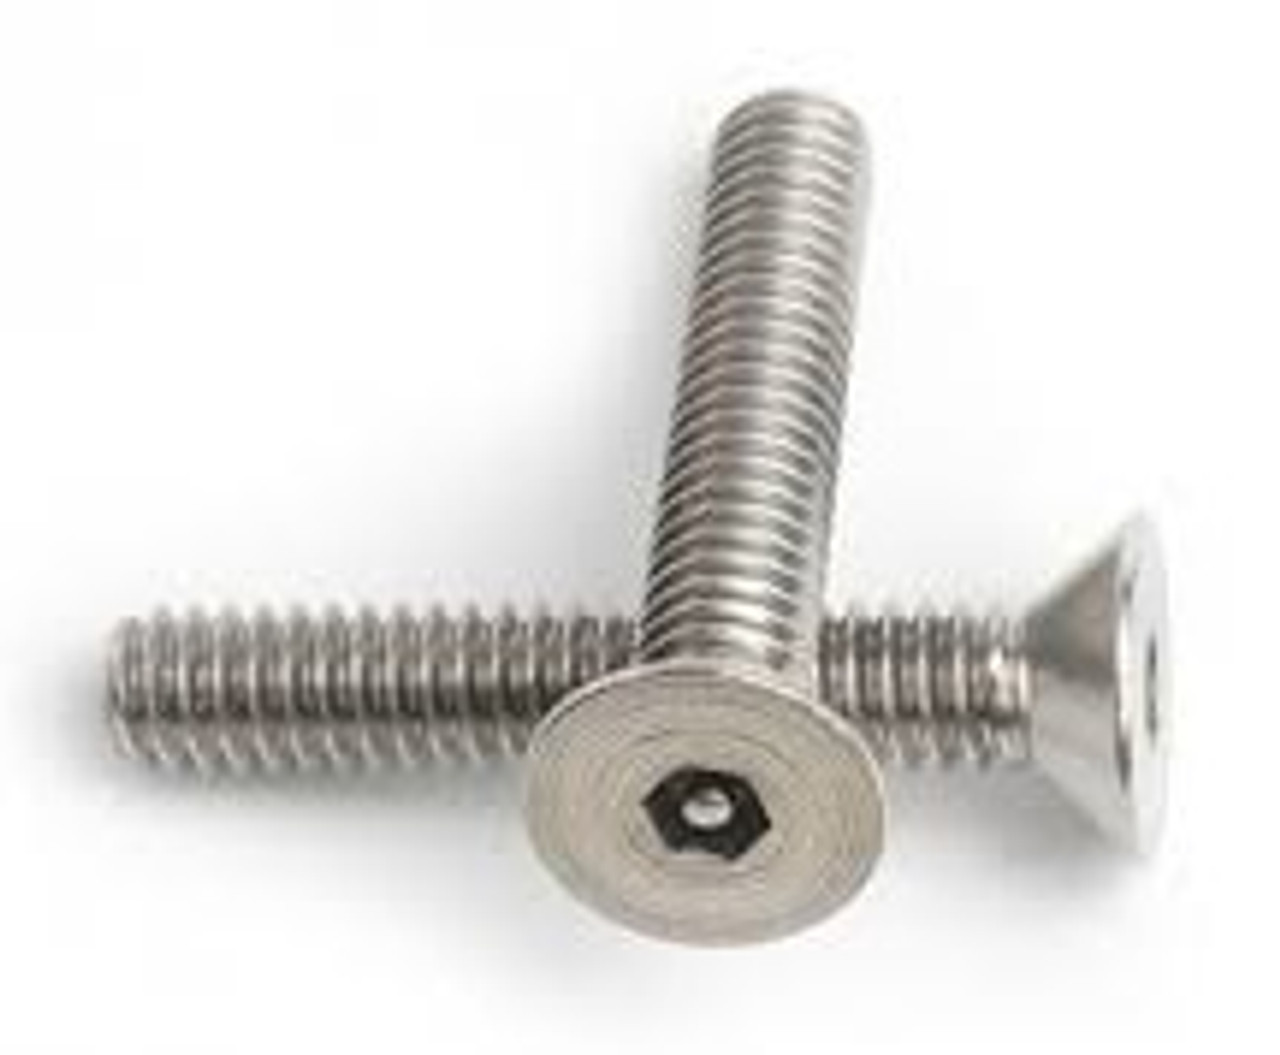 3/8-16 x 3/4 Flat Head Socket Security Screw Stainless